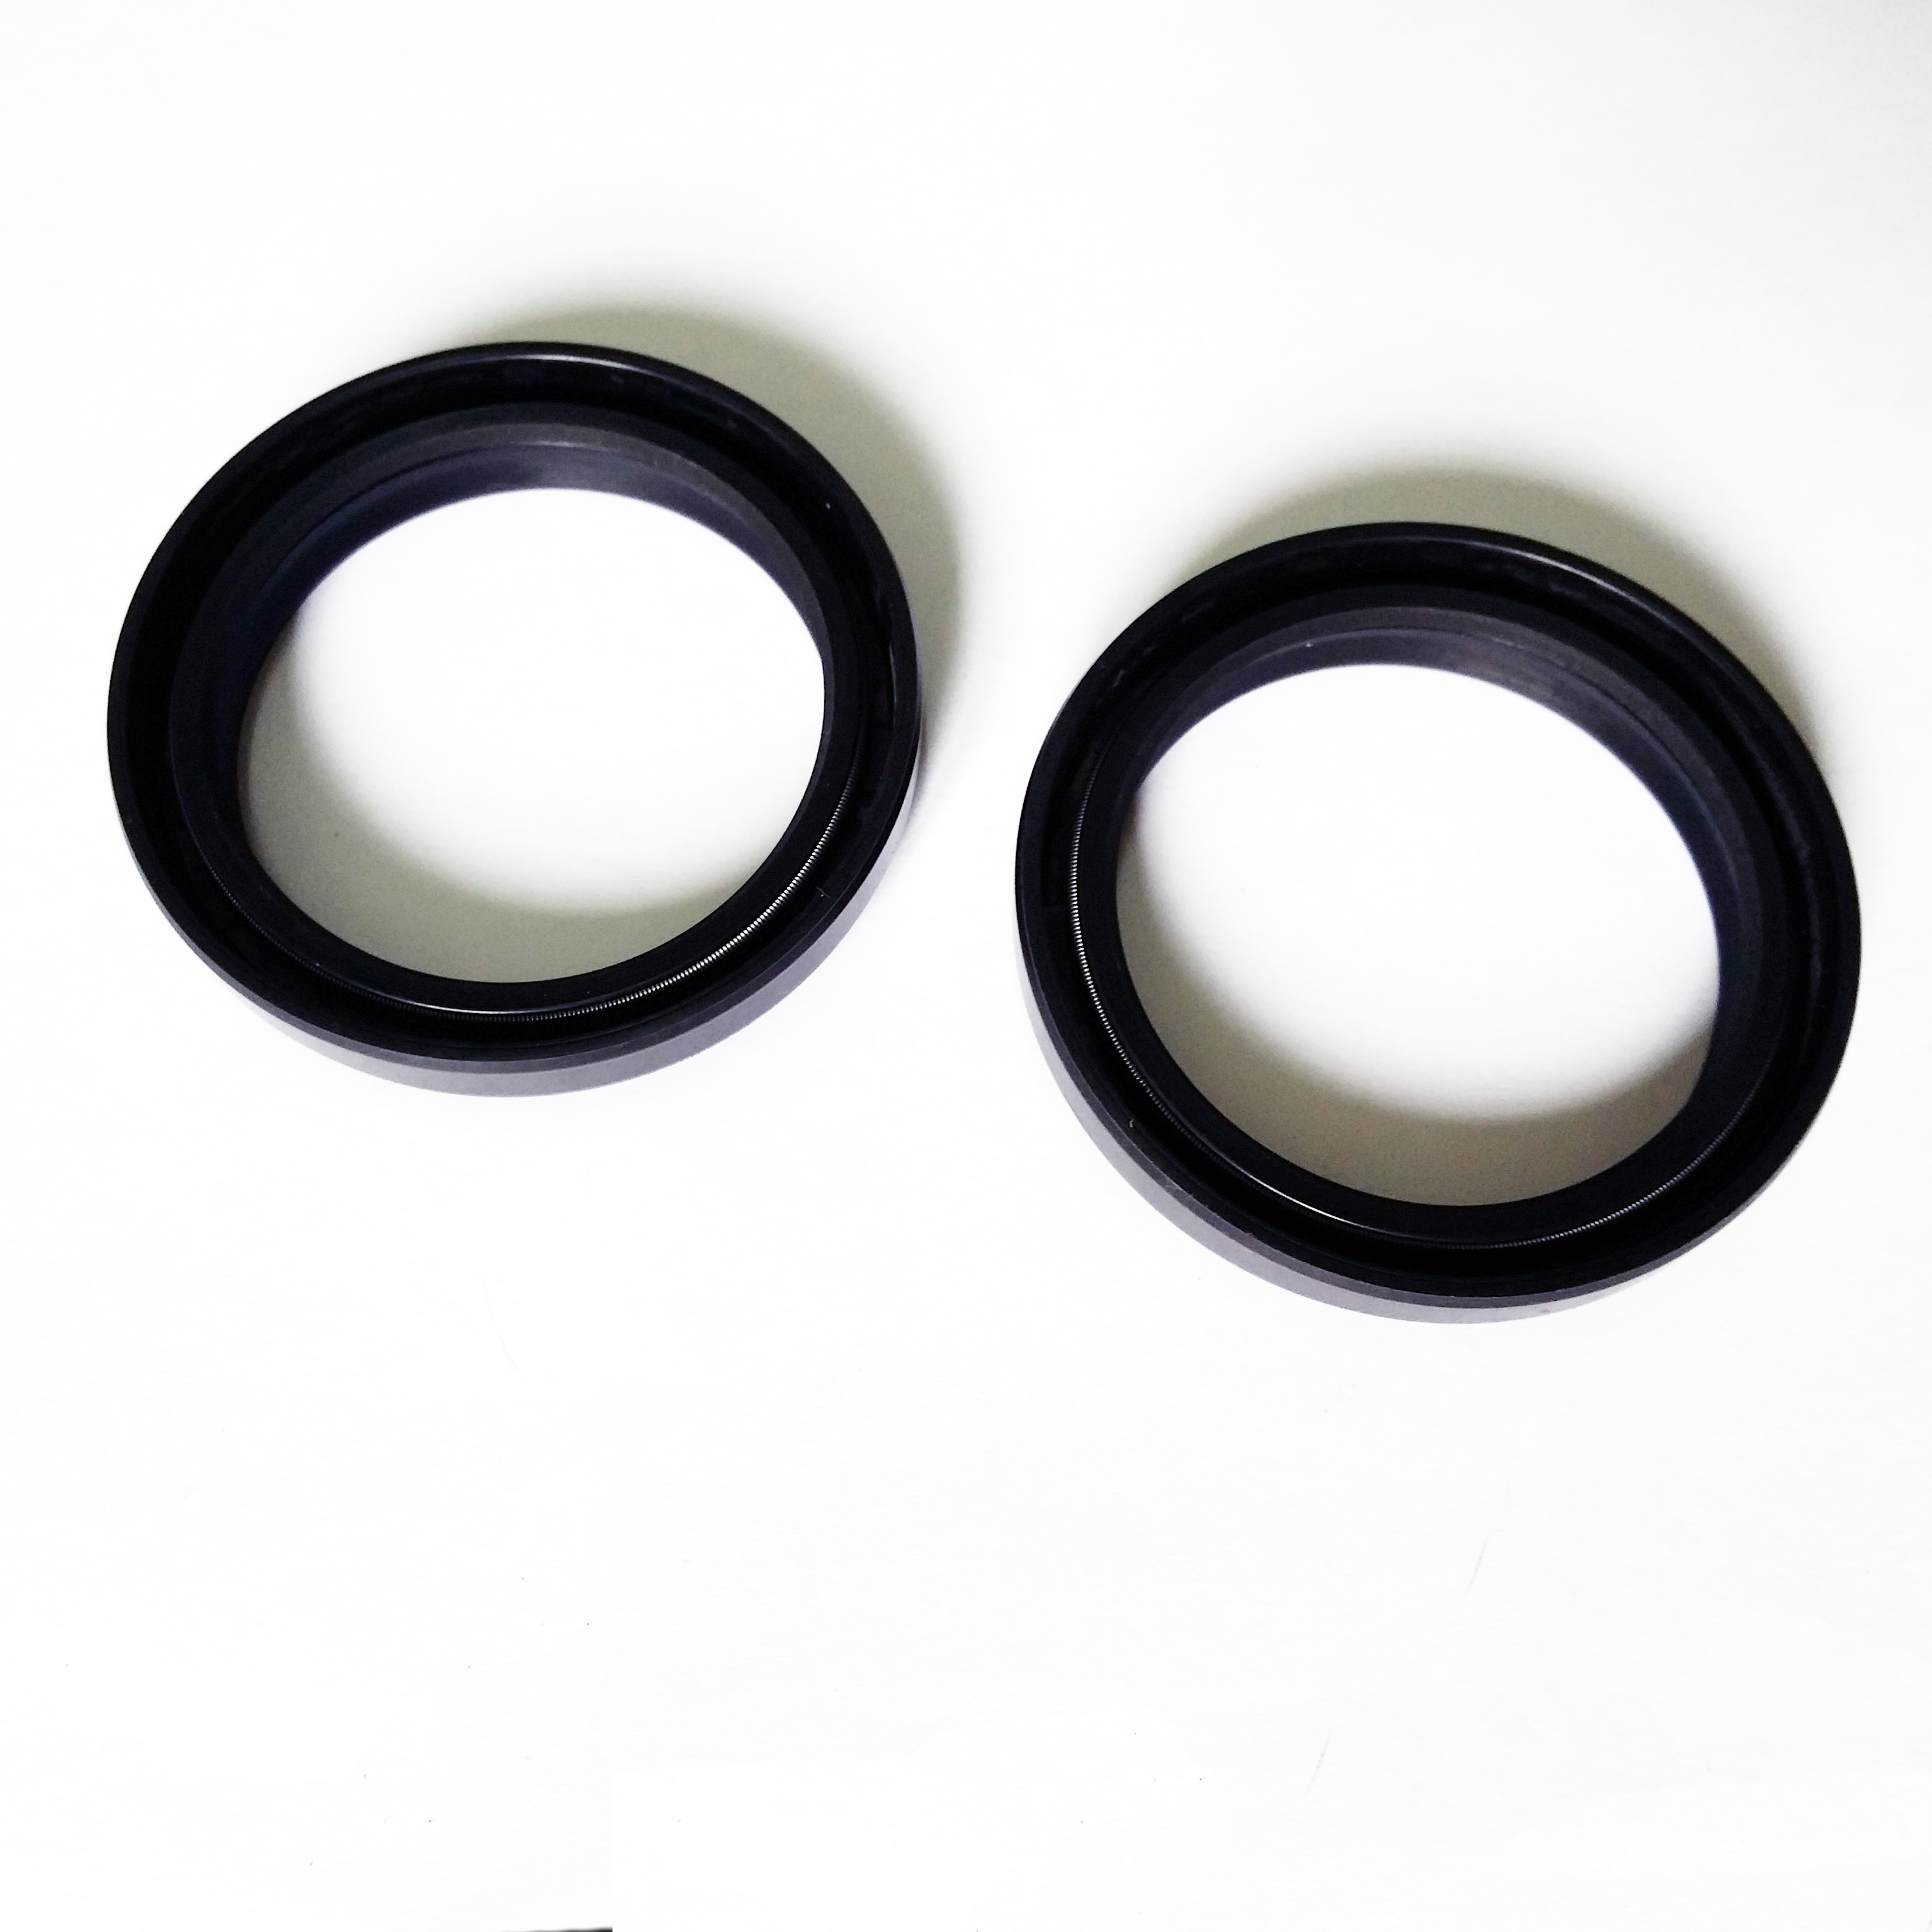 K-Tech Yamaha TDM900 1991-2001 NOK Front Fork Oil Seals 43x55x9.5/10mm